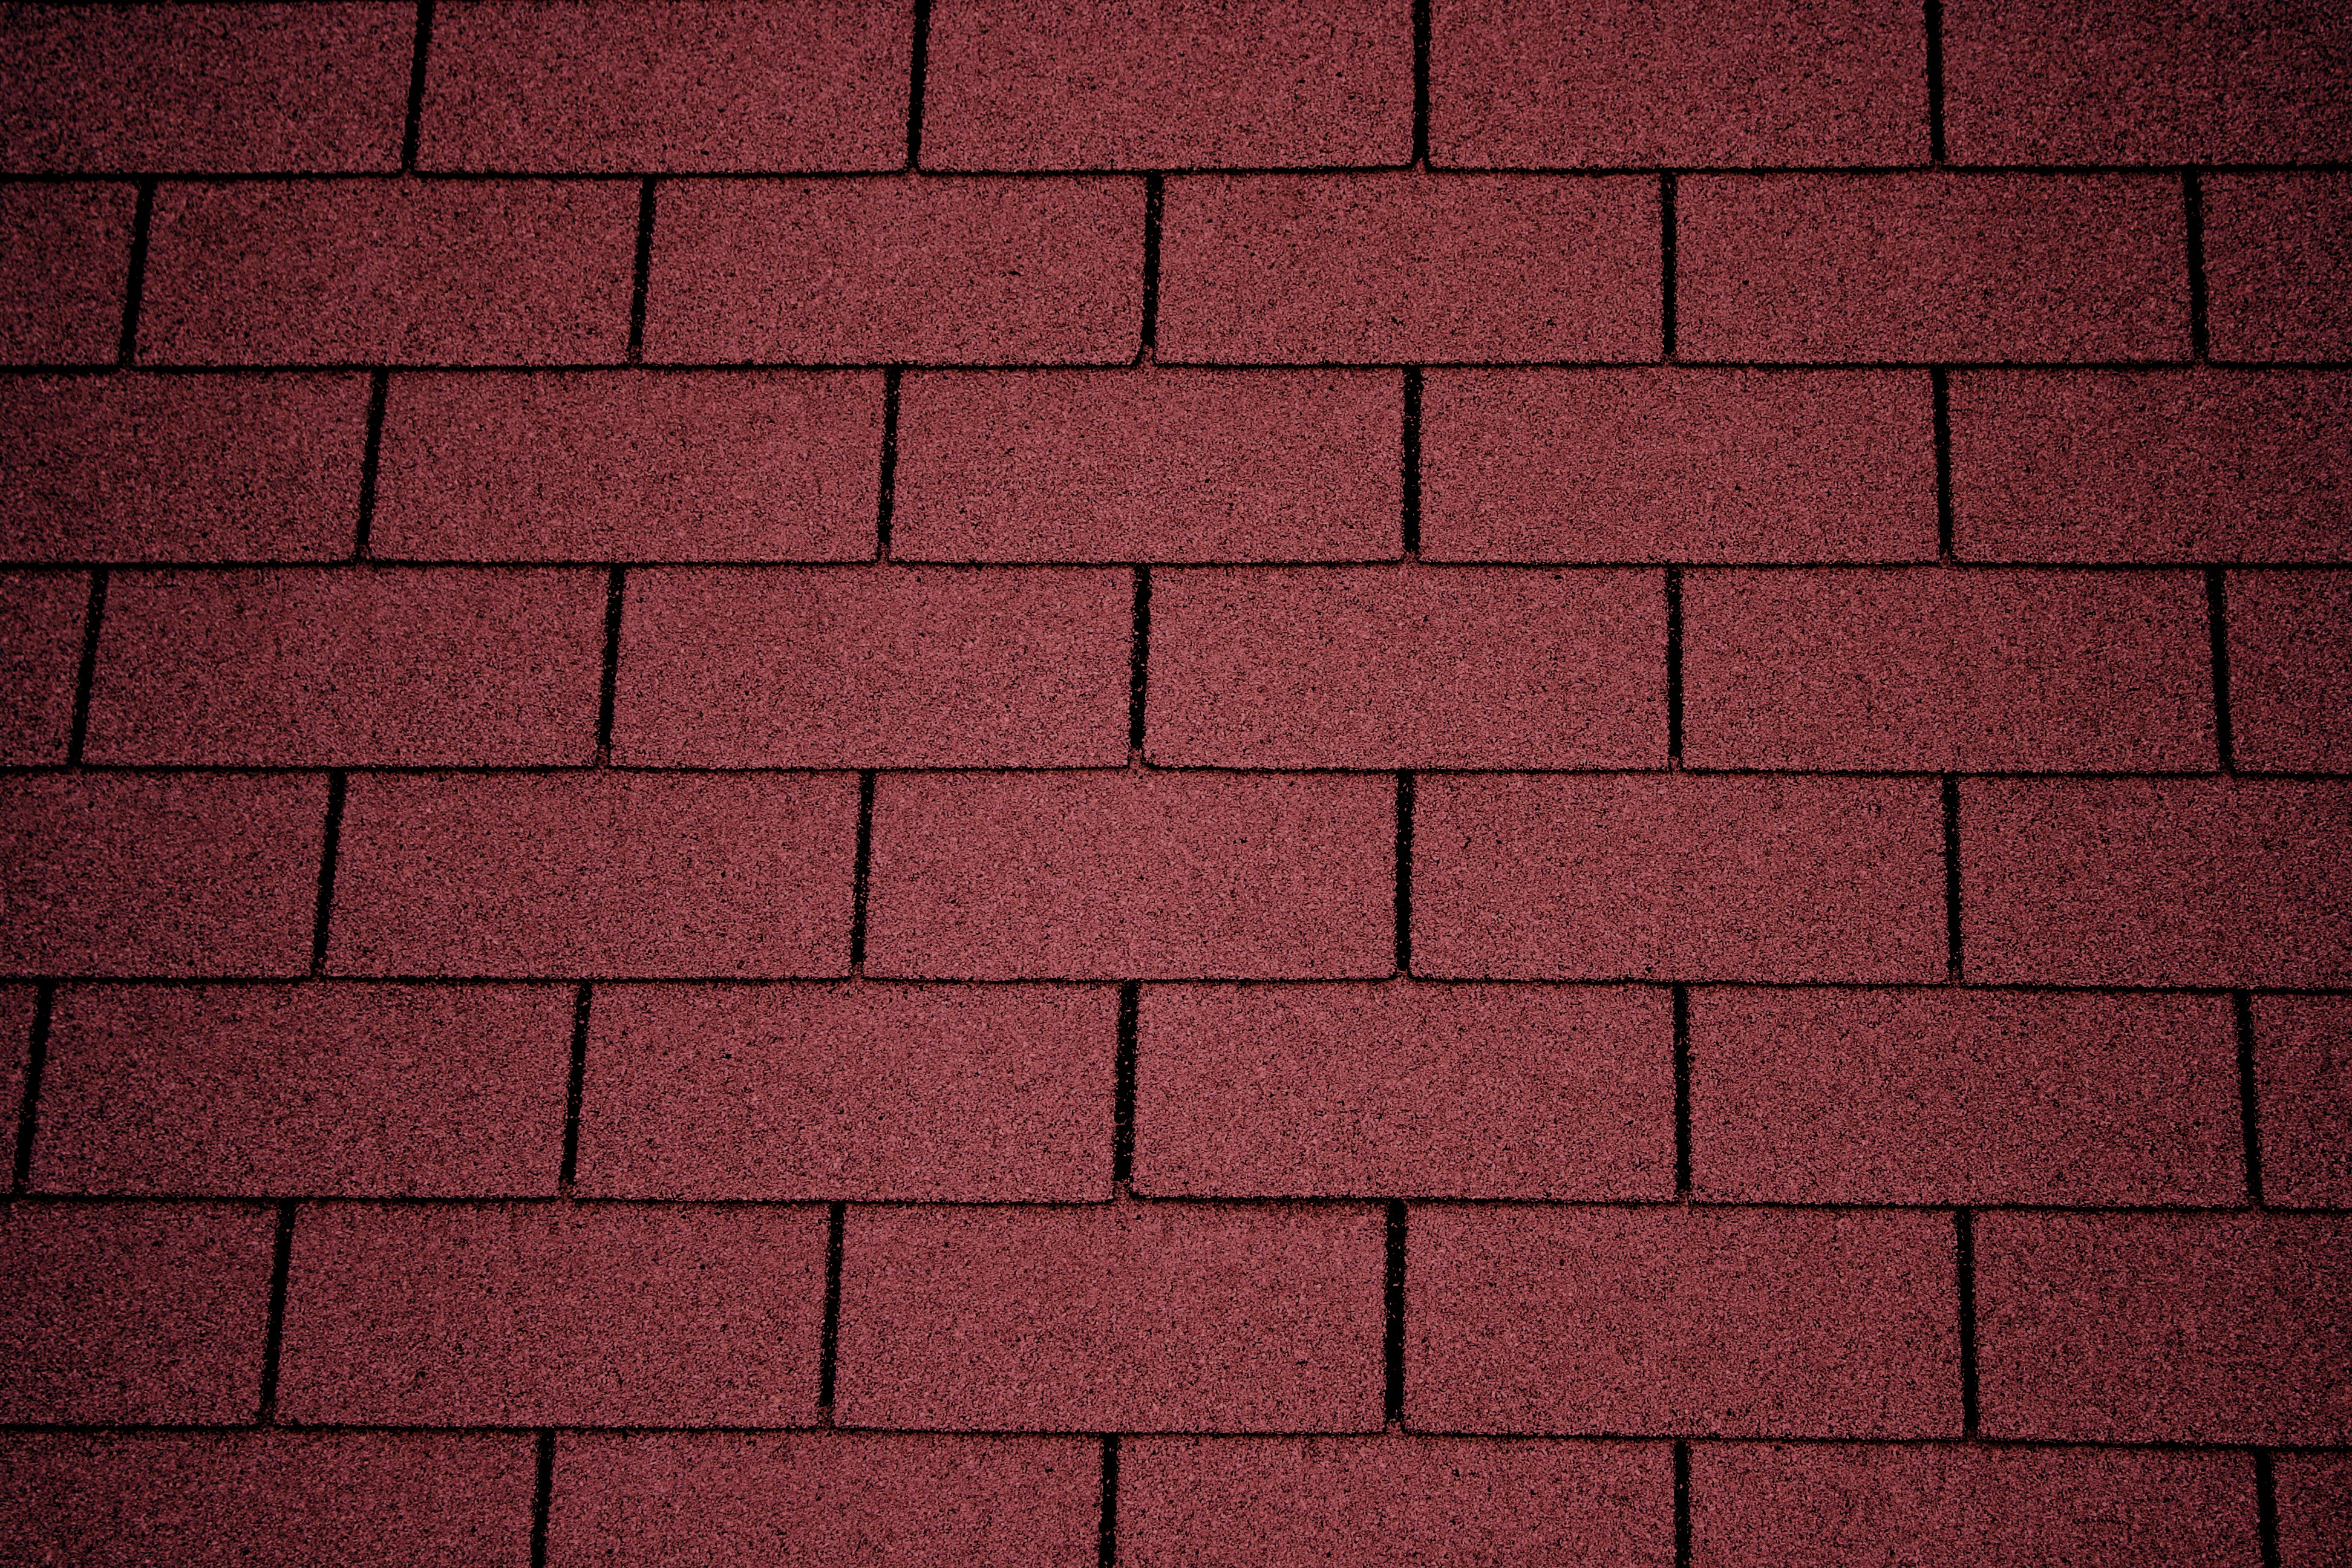 Red Asphalt Roof Shingles Texture Picture Photograph 3888x2592